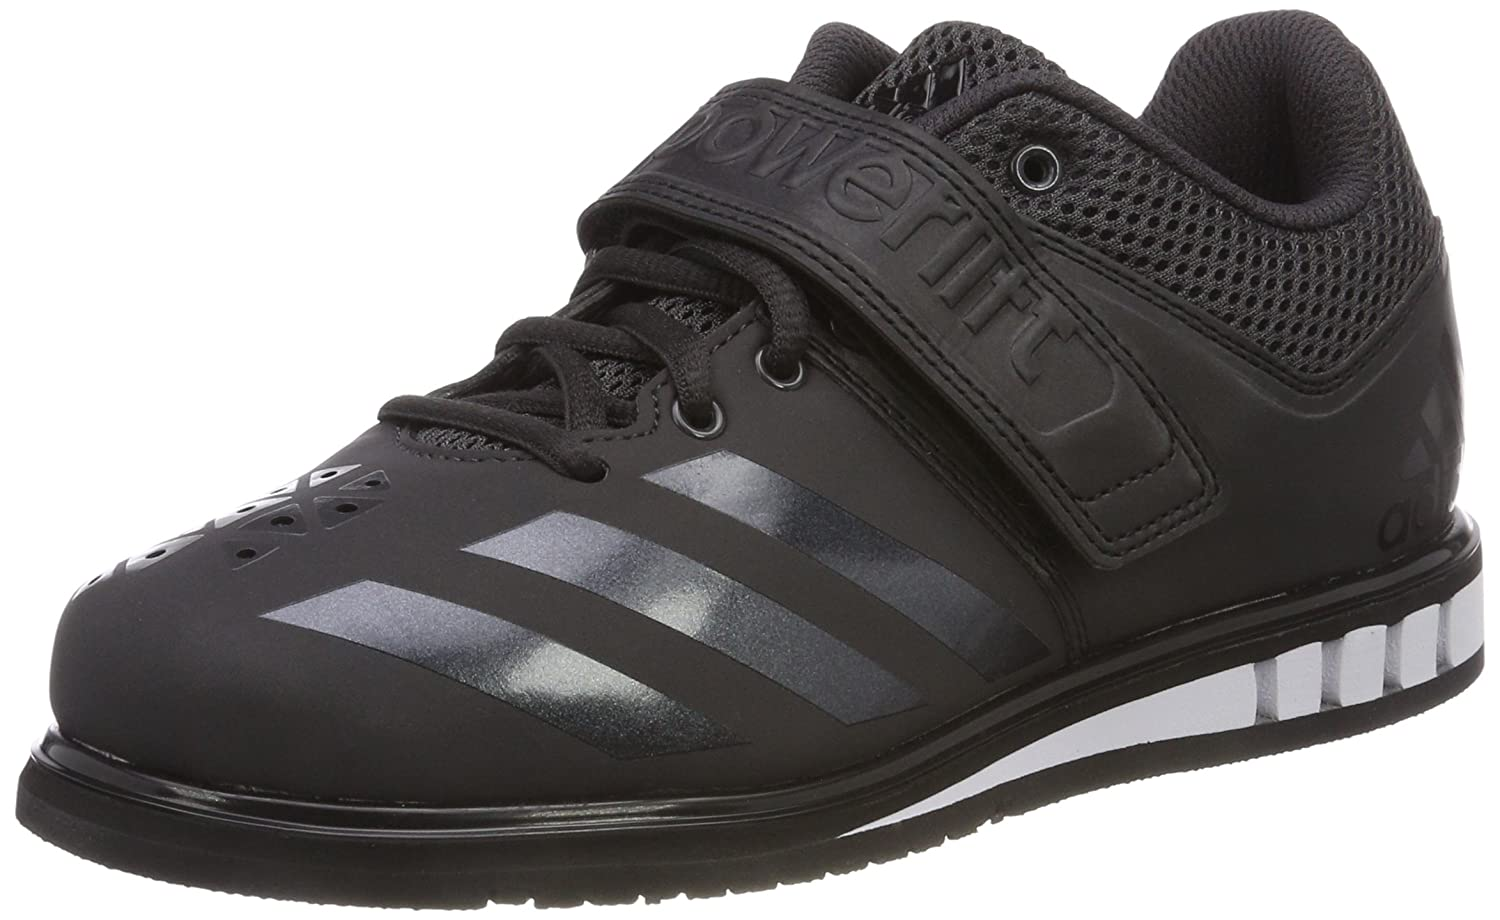 Black (Neguti Negbas Ftwbla 000) adidas Men's Powerlift.3.1 Multisport Indoor shoes